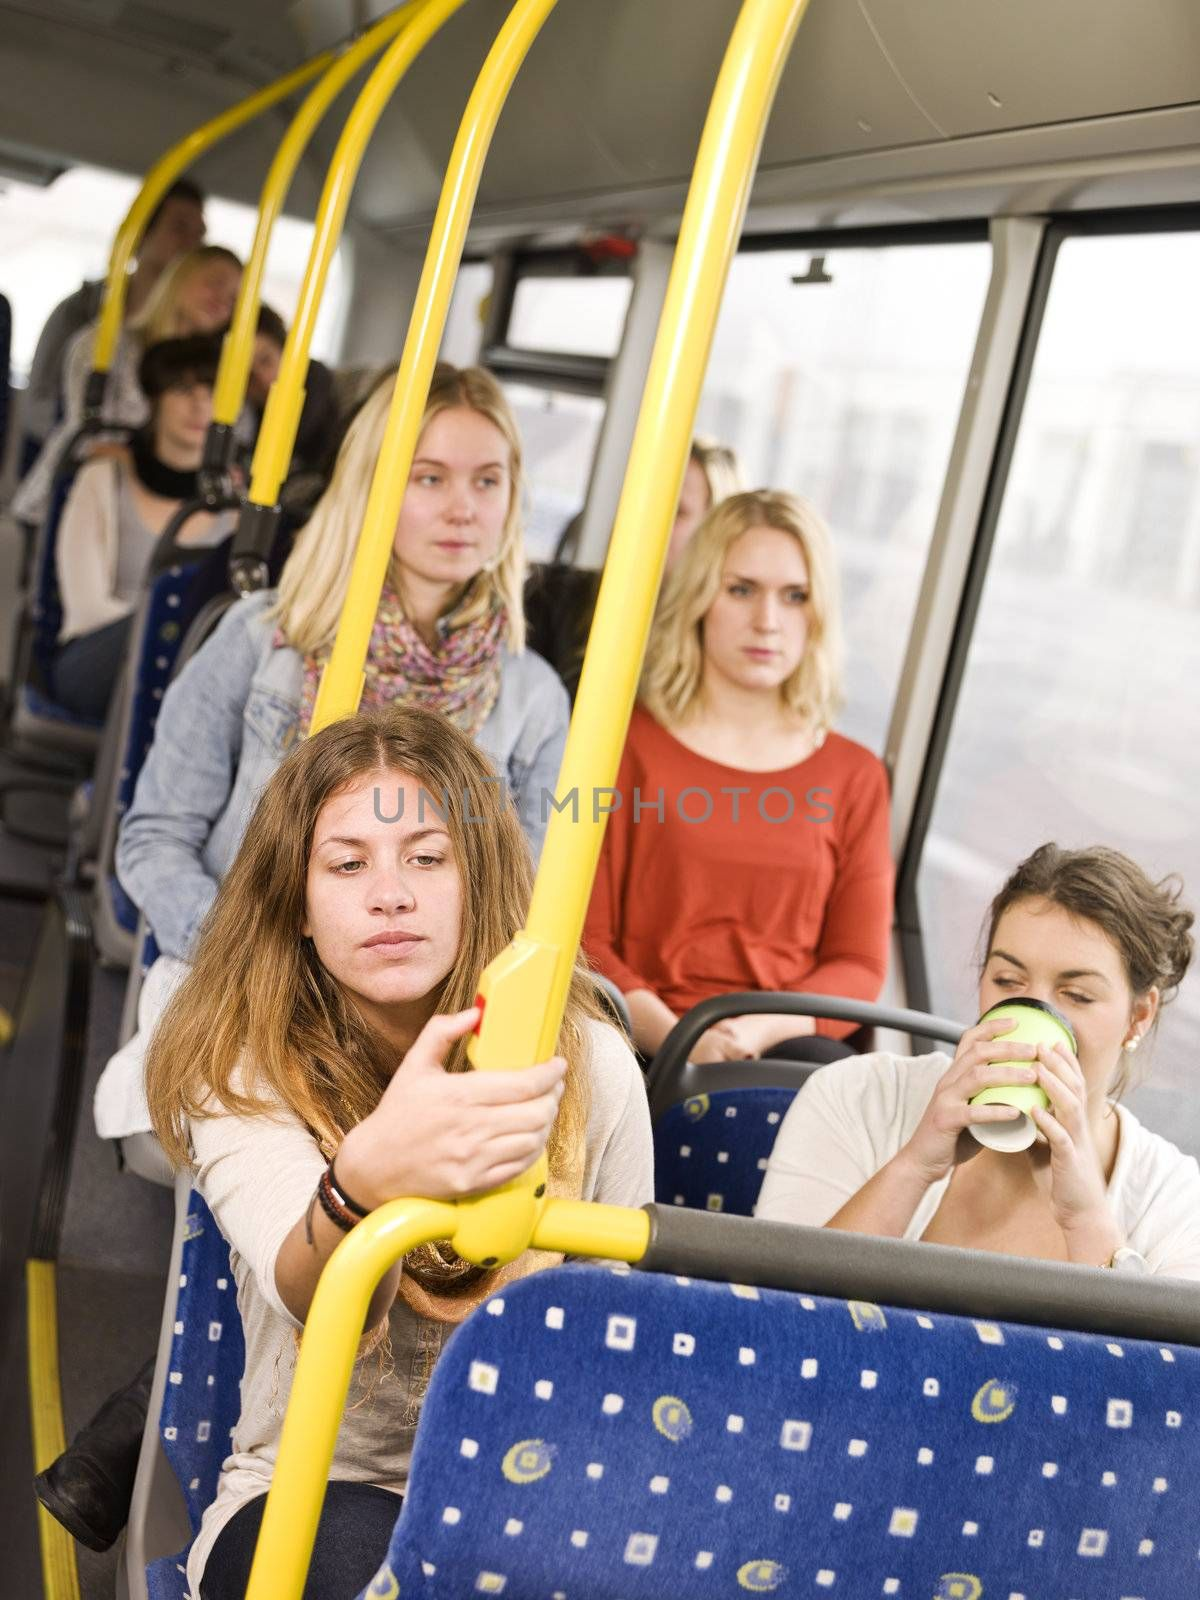 Woman pressing the stop botton on the bus